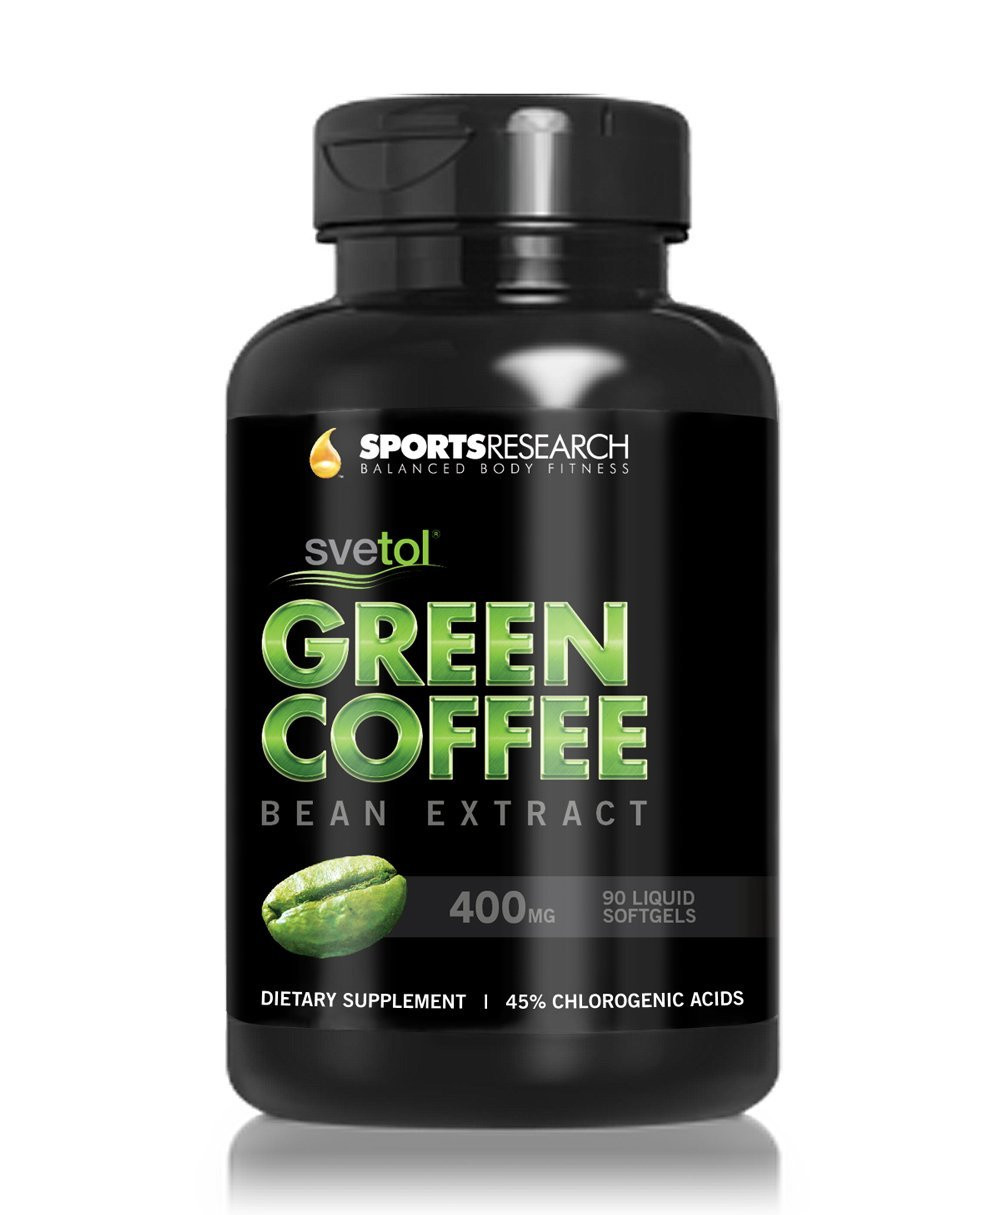 Green Coffee Bean Extract  SVETOL Green Coffee Bean Extract 90 Liquid Softgels with